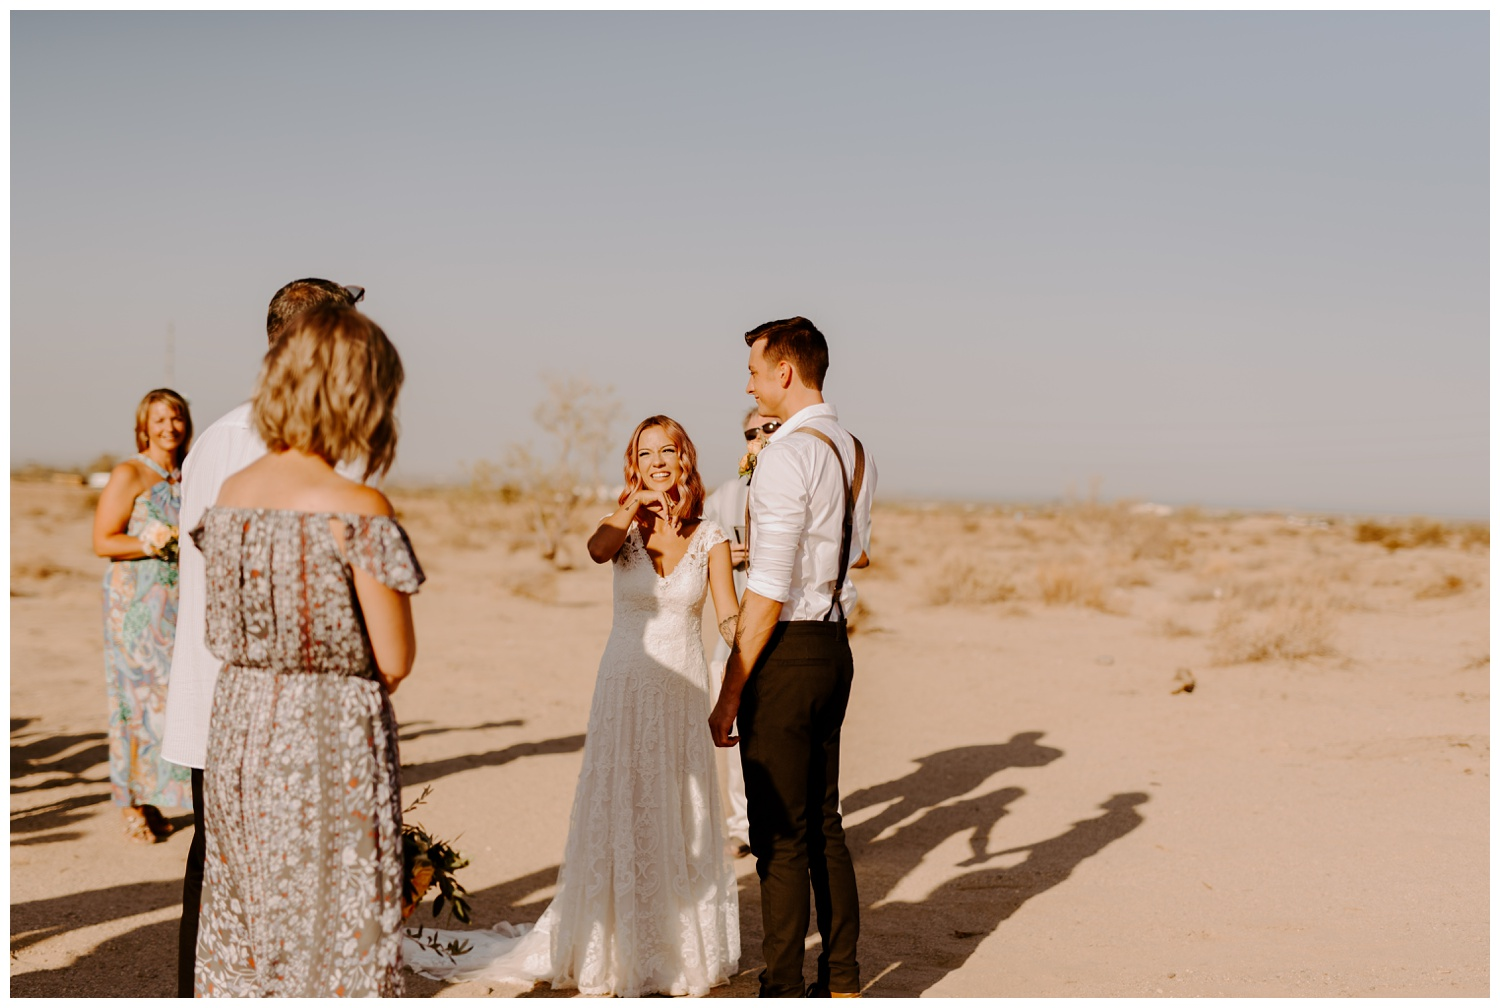 Salvation Mountain Elopement Palm Springs Pink Hair Bride - Jessica Heron Images_0131.jpg